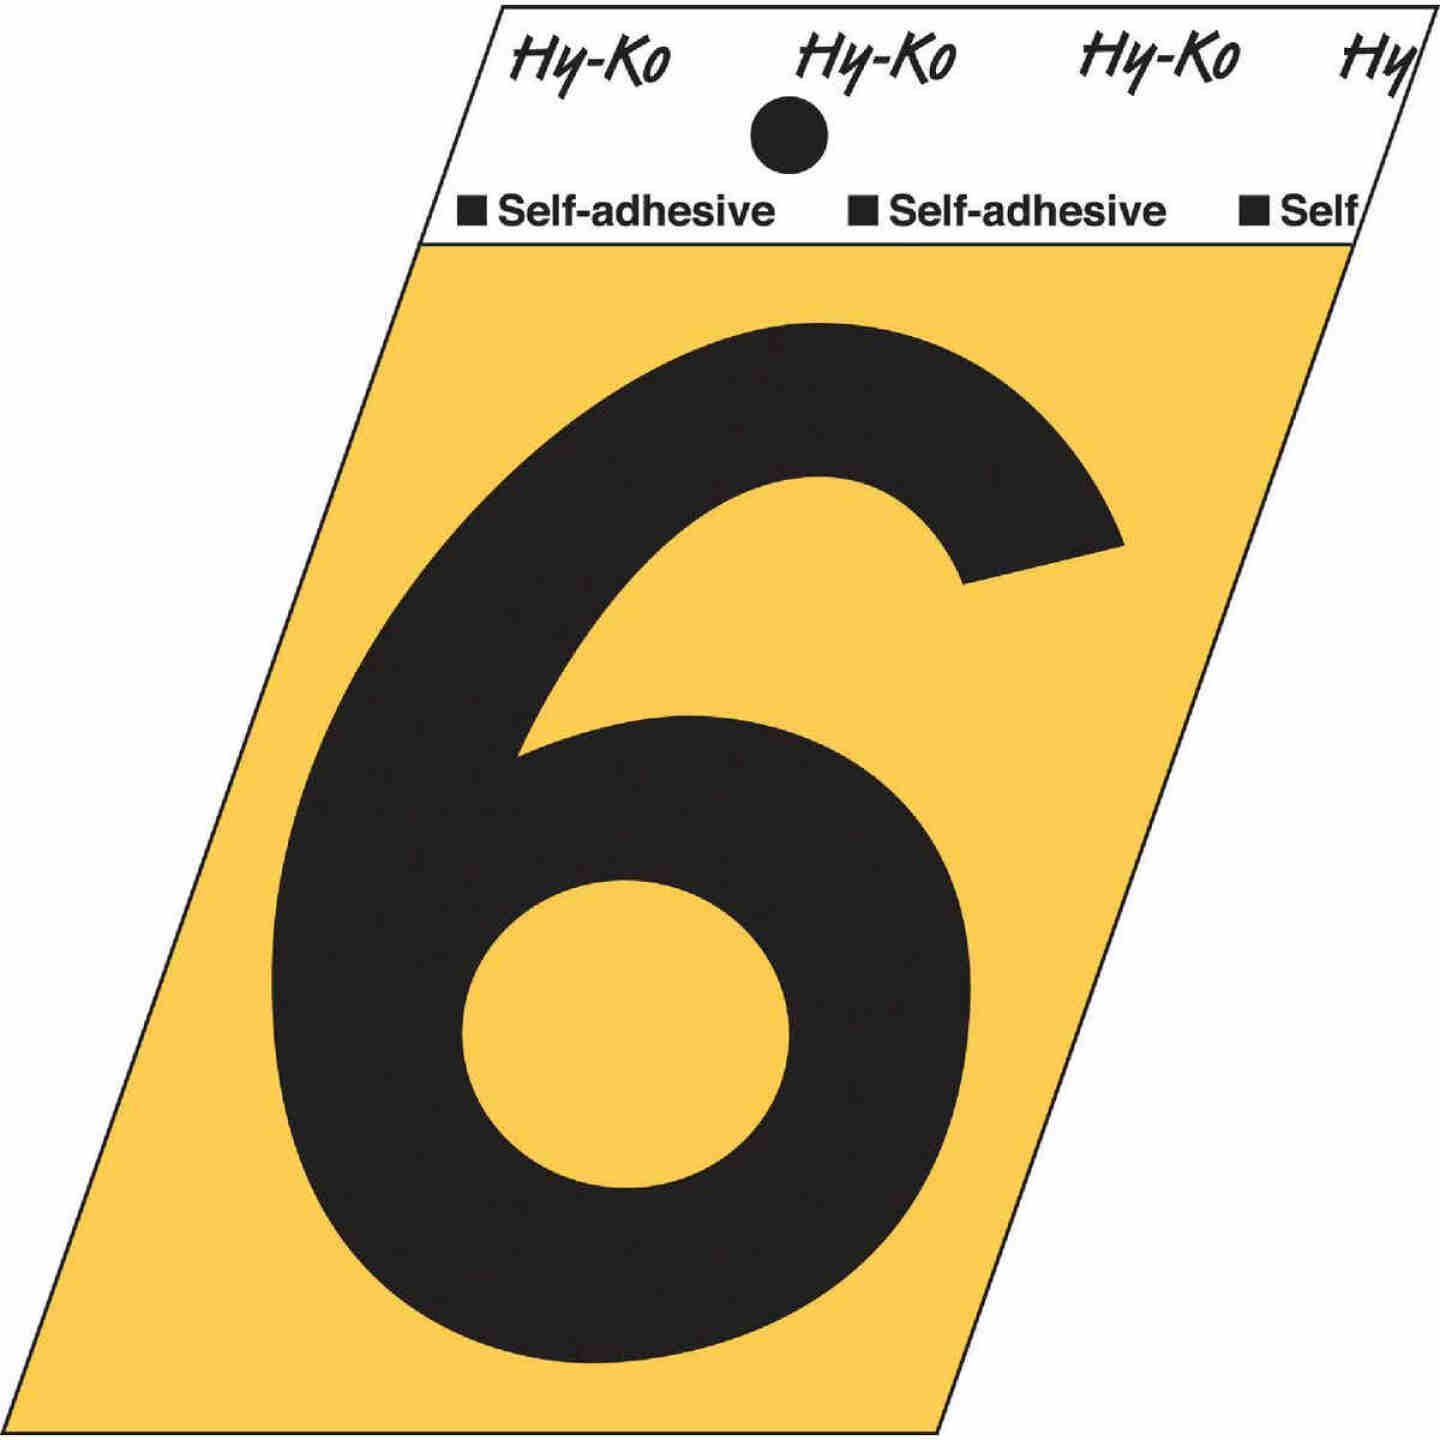 Hy-Ko Aluminum 3-1/2 In. Non-Reflective Adhesive Number Six Image 1